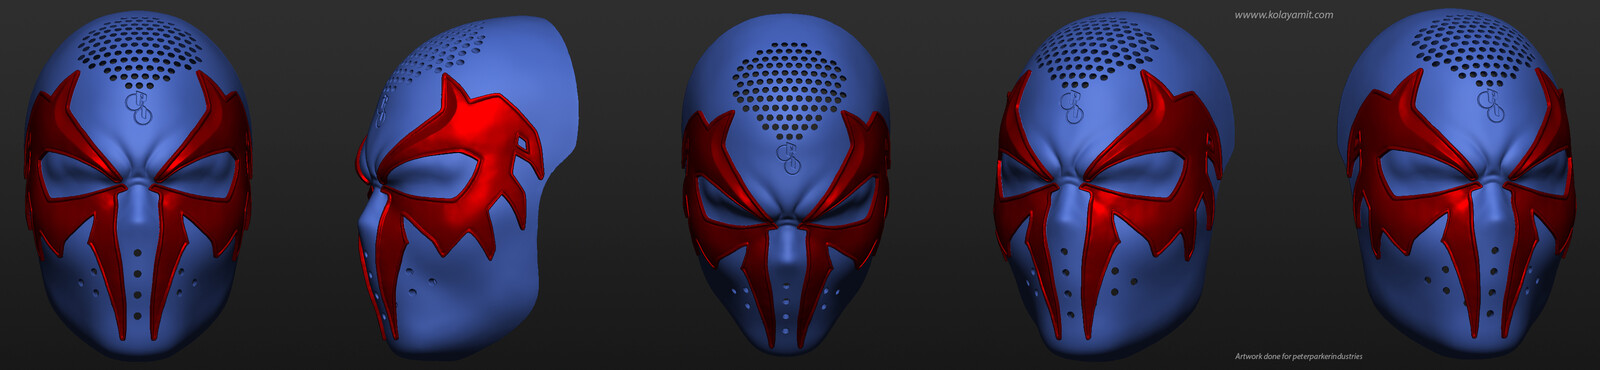 Spiderman 2099 Mask